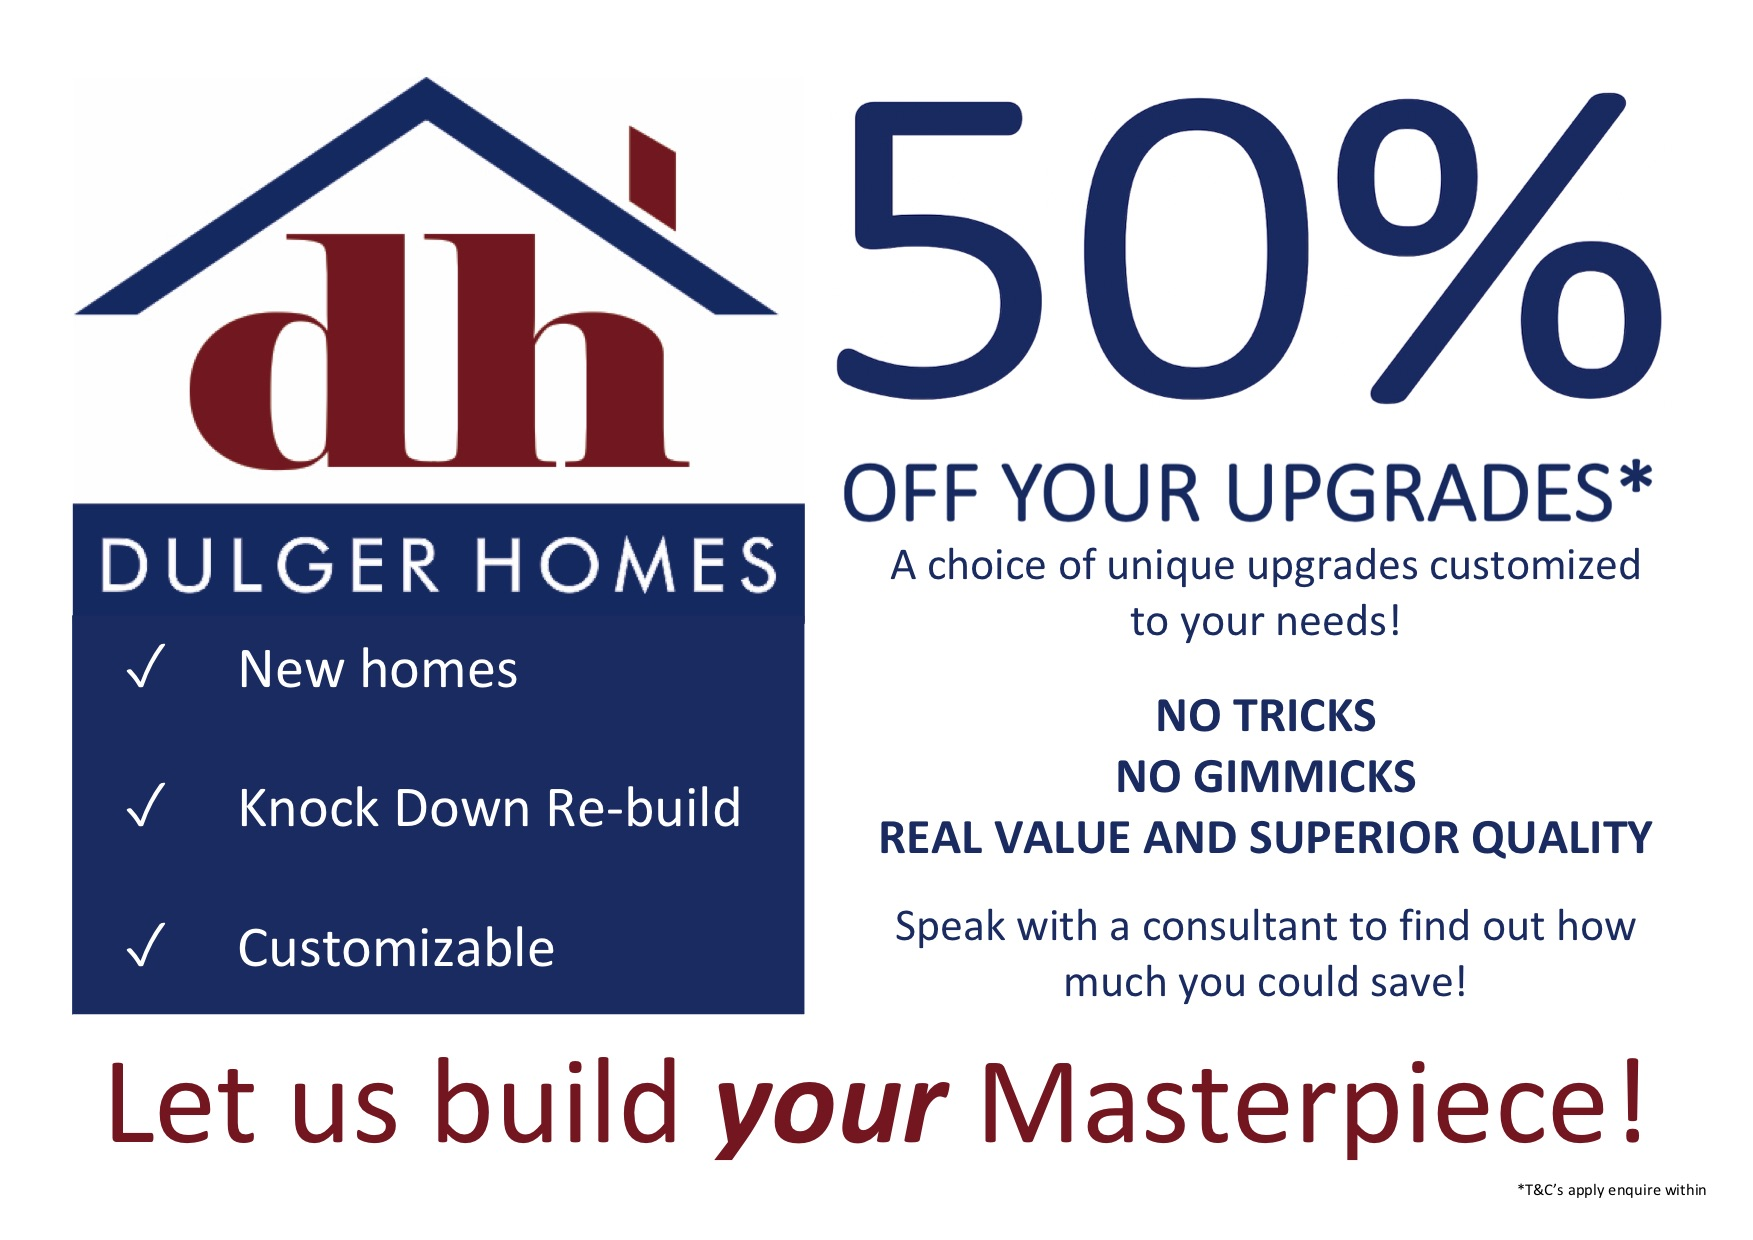 50% off your upgrades!*